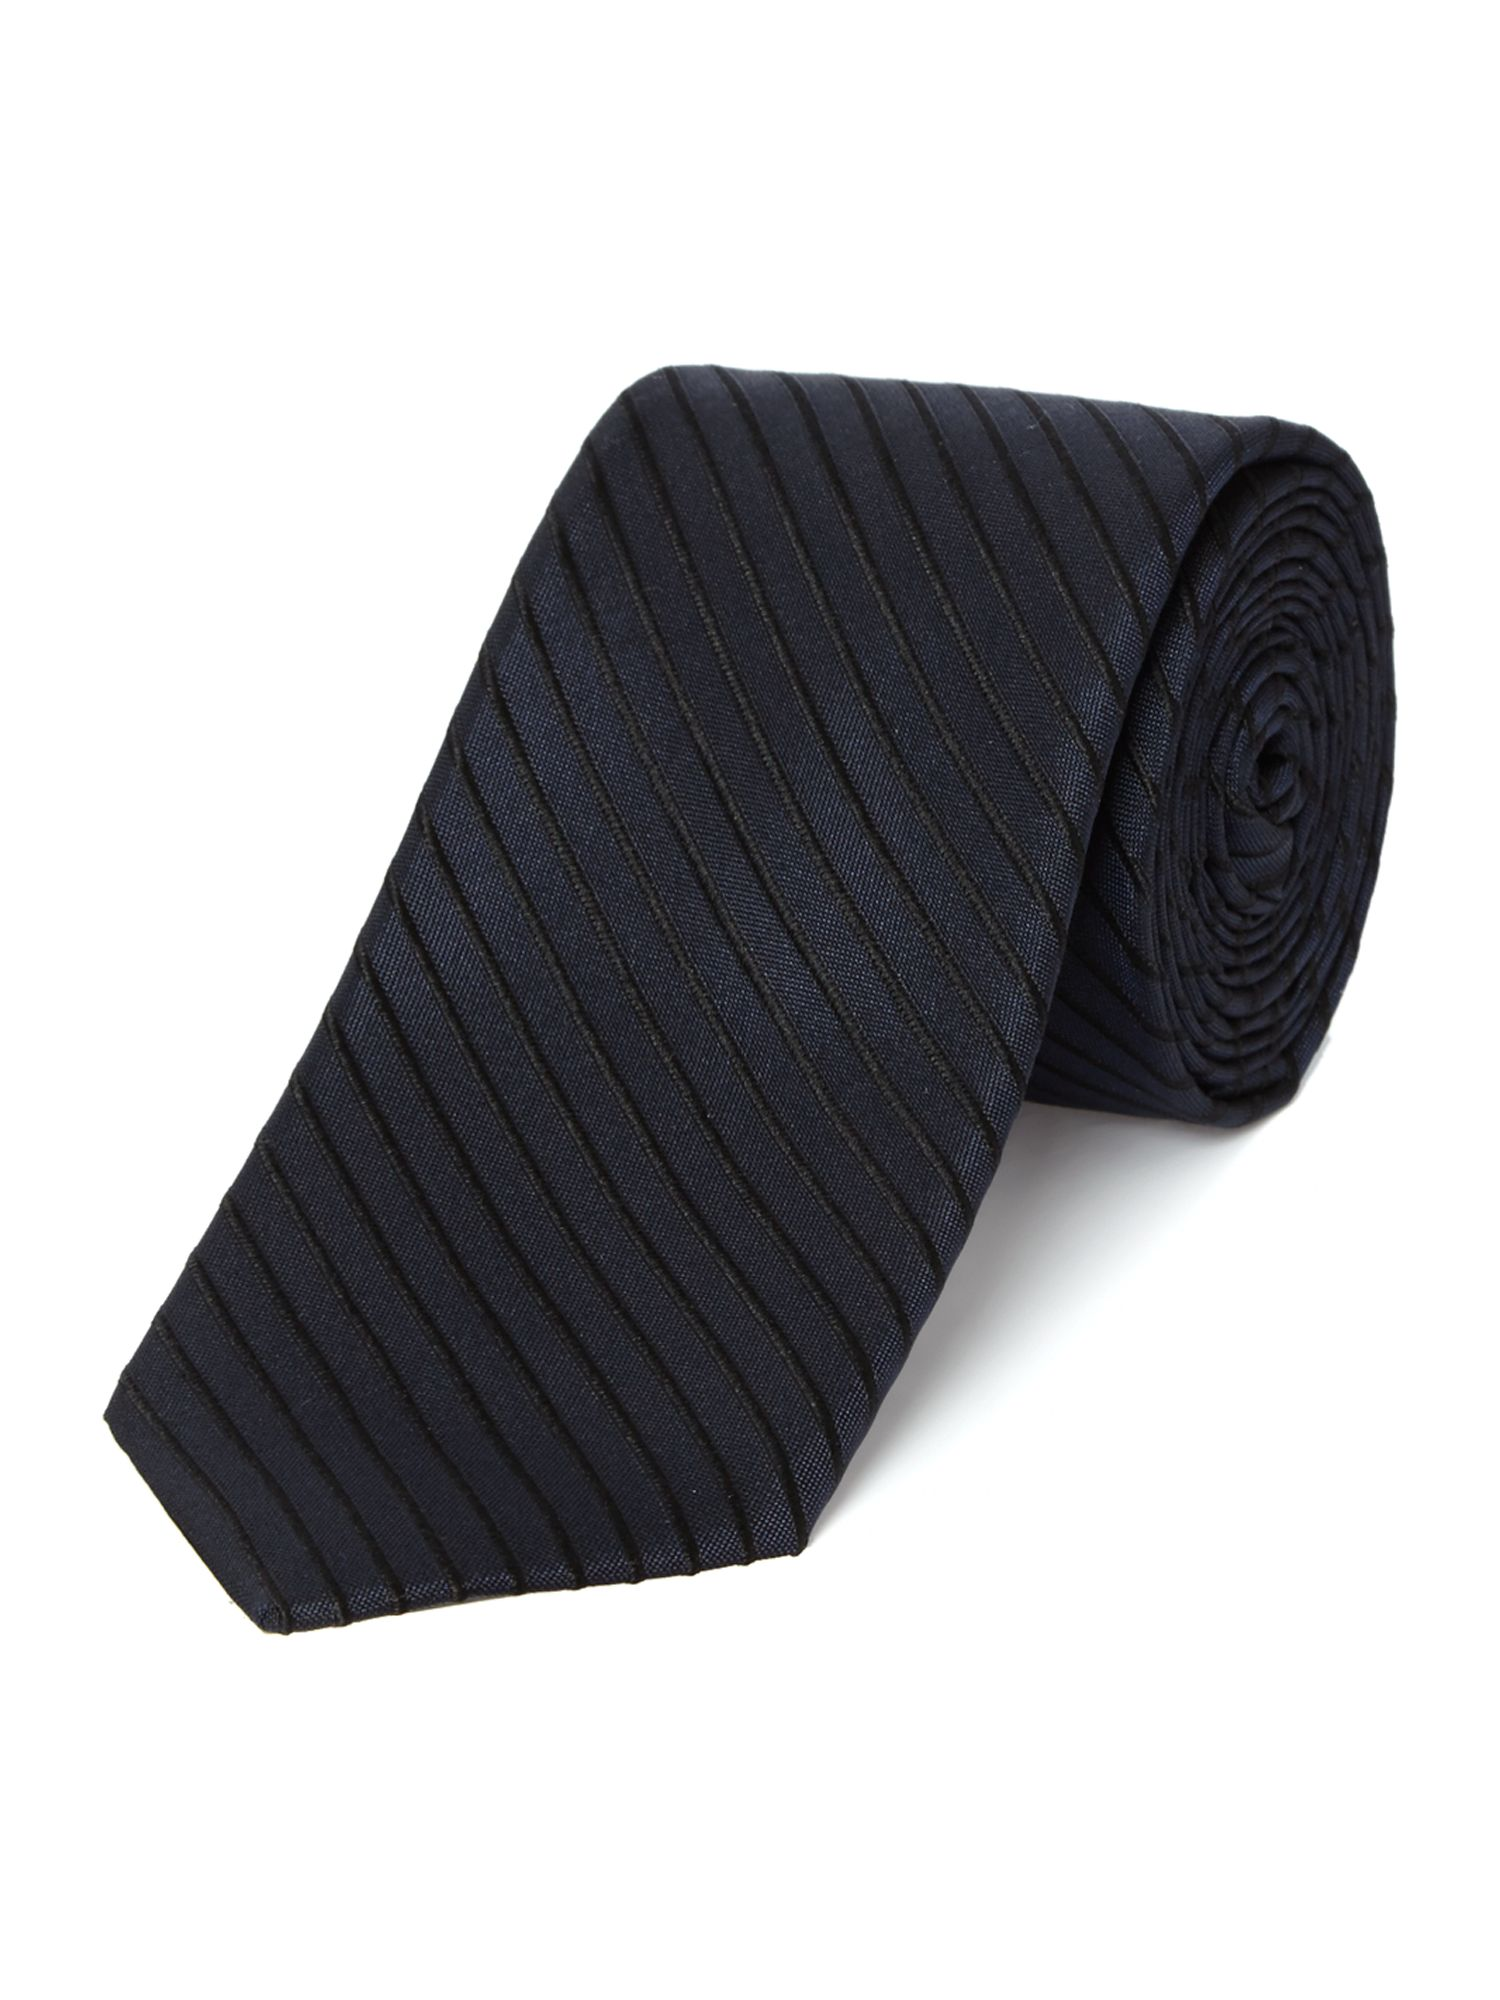 Agate satin stripe silk tie